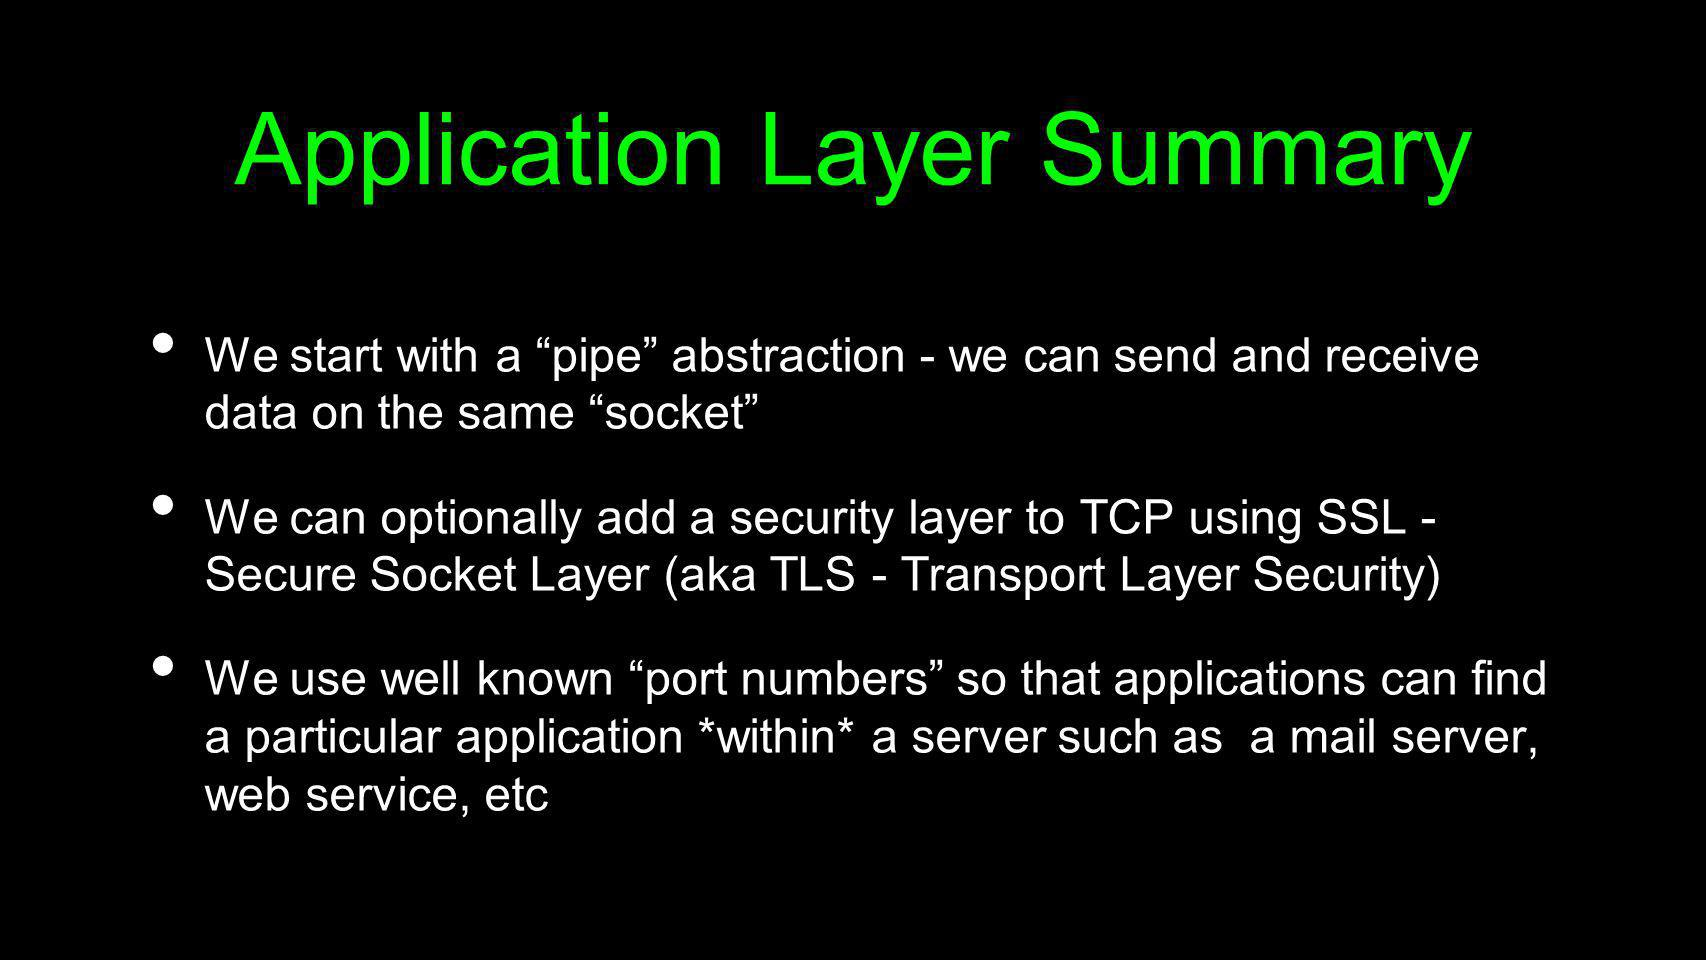 Application Layer Summary